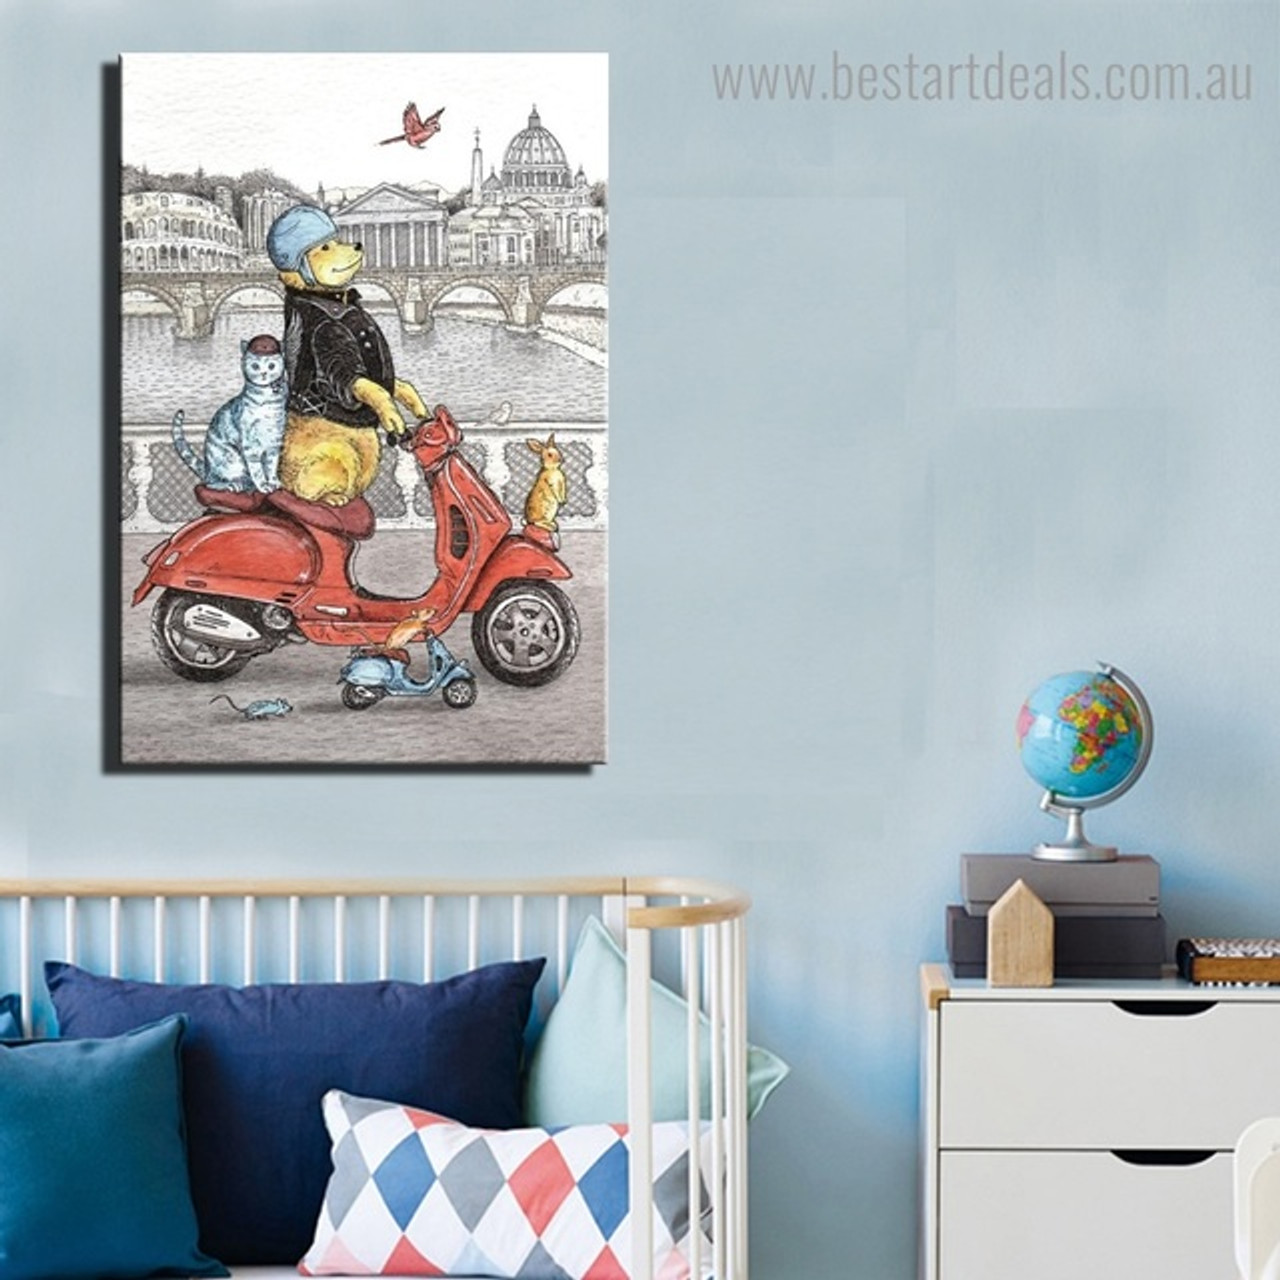 4 Ways to Display Artwork in the Kids Nursery